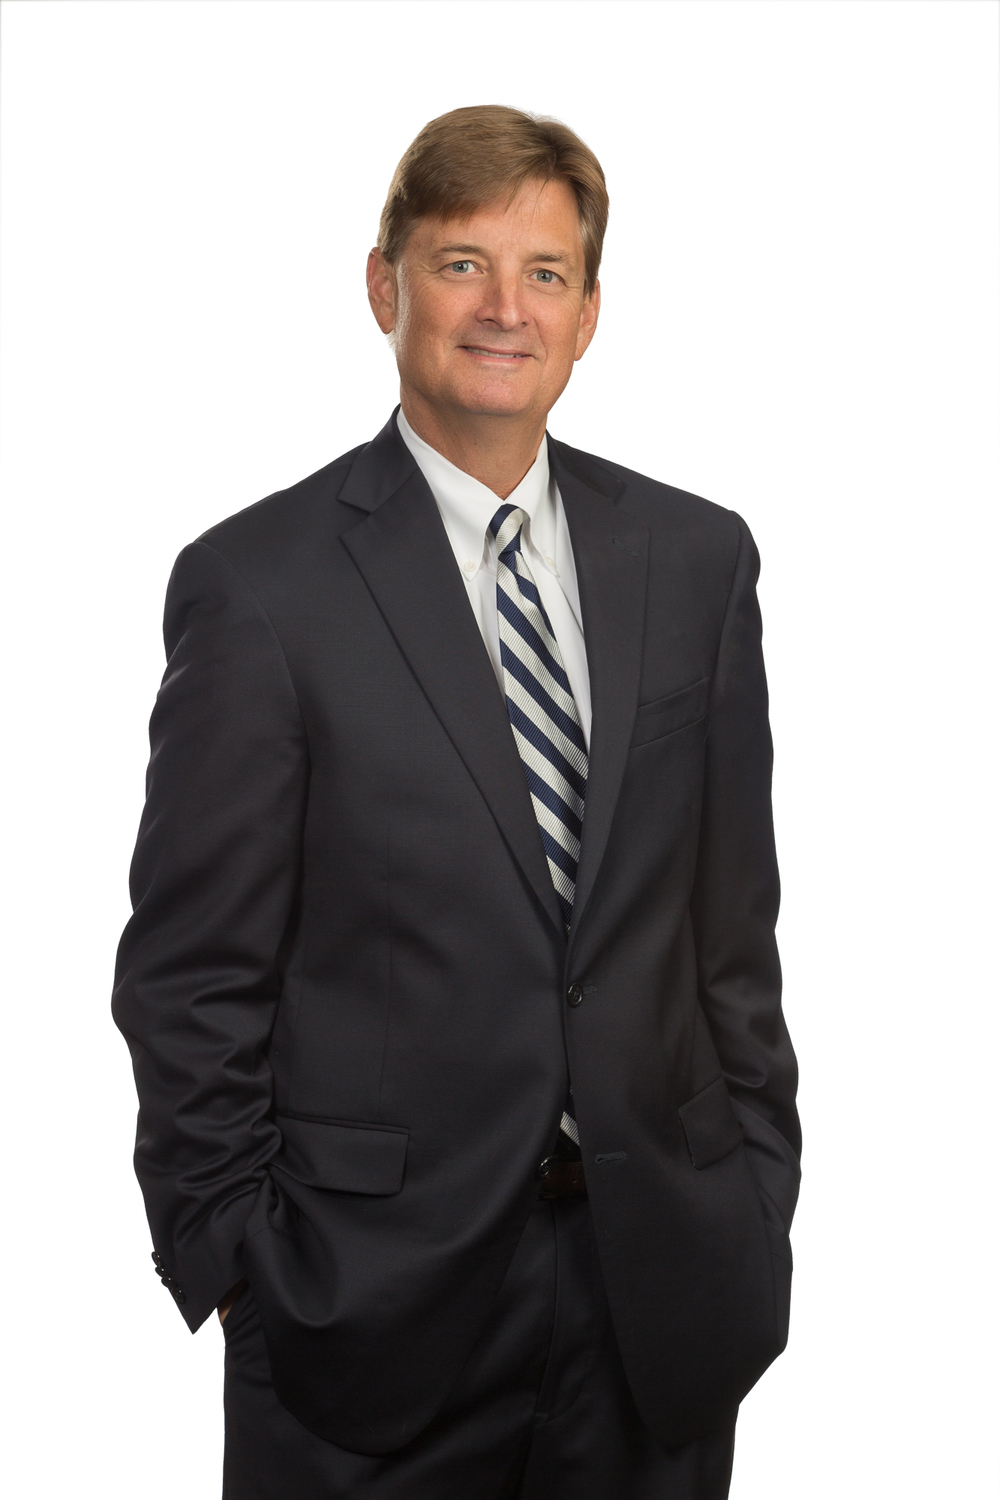 Corporate-Headshots-Lawfirm-Jacksonville.jpg